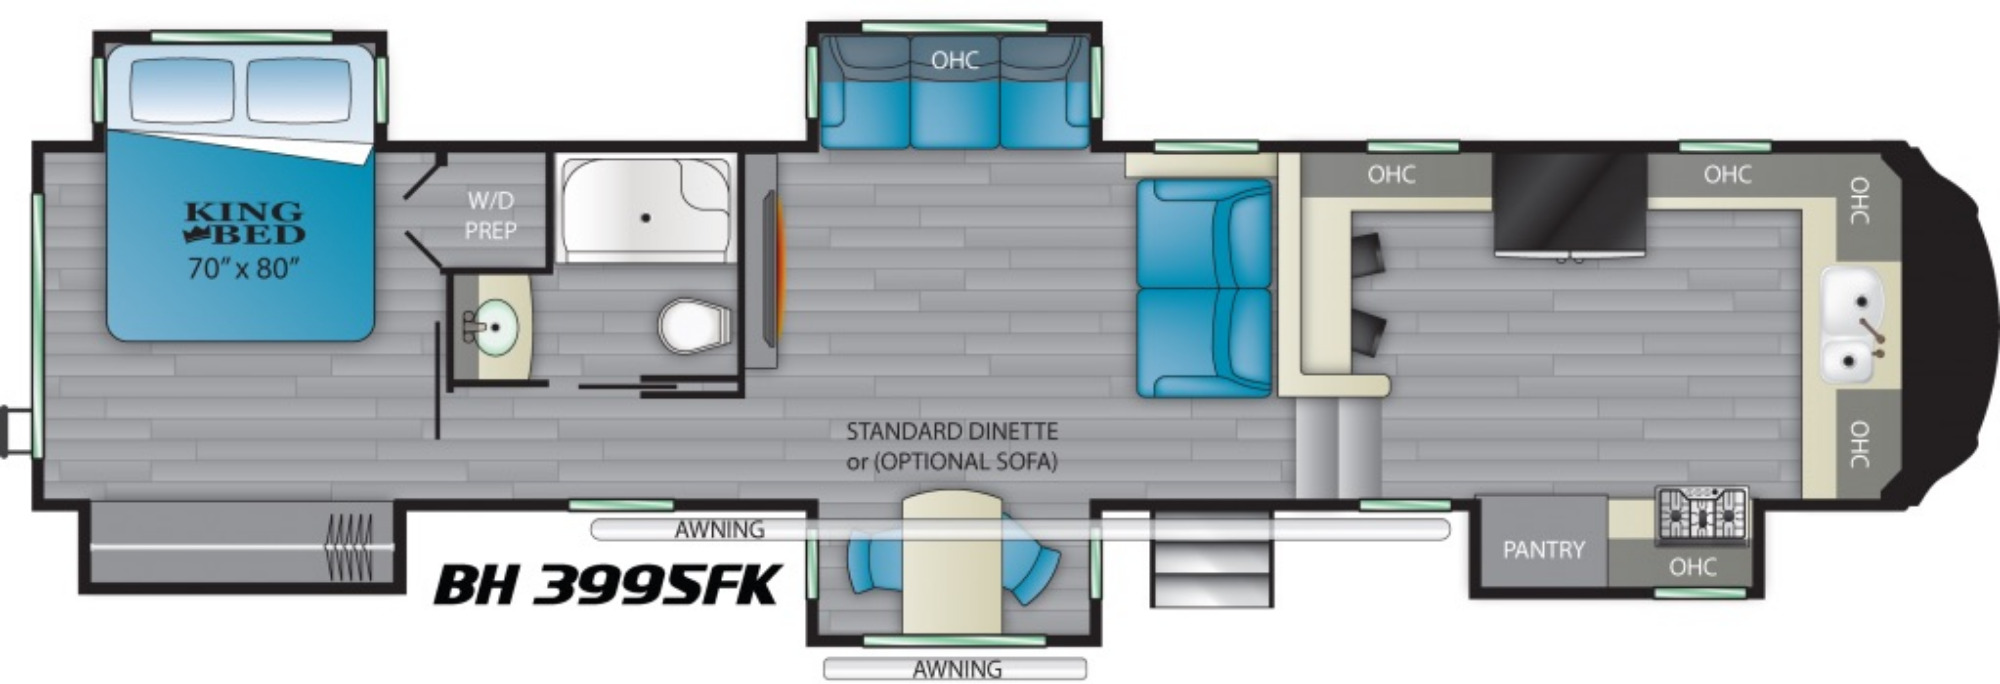 View Floor Plan for 2021 HEARTLAND BIGHORN 3995FK